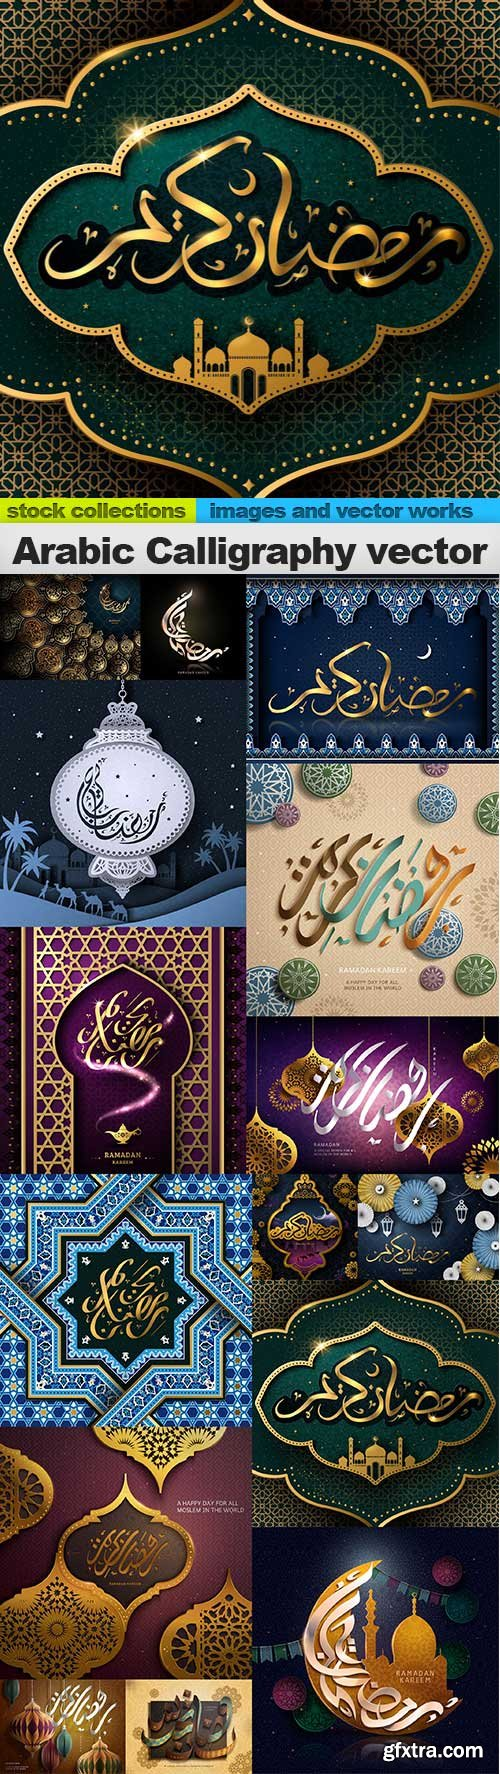 Arabic Calligraphy vector, 15 x EPS